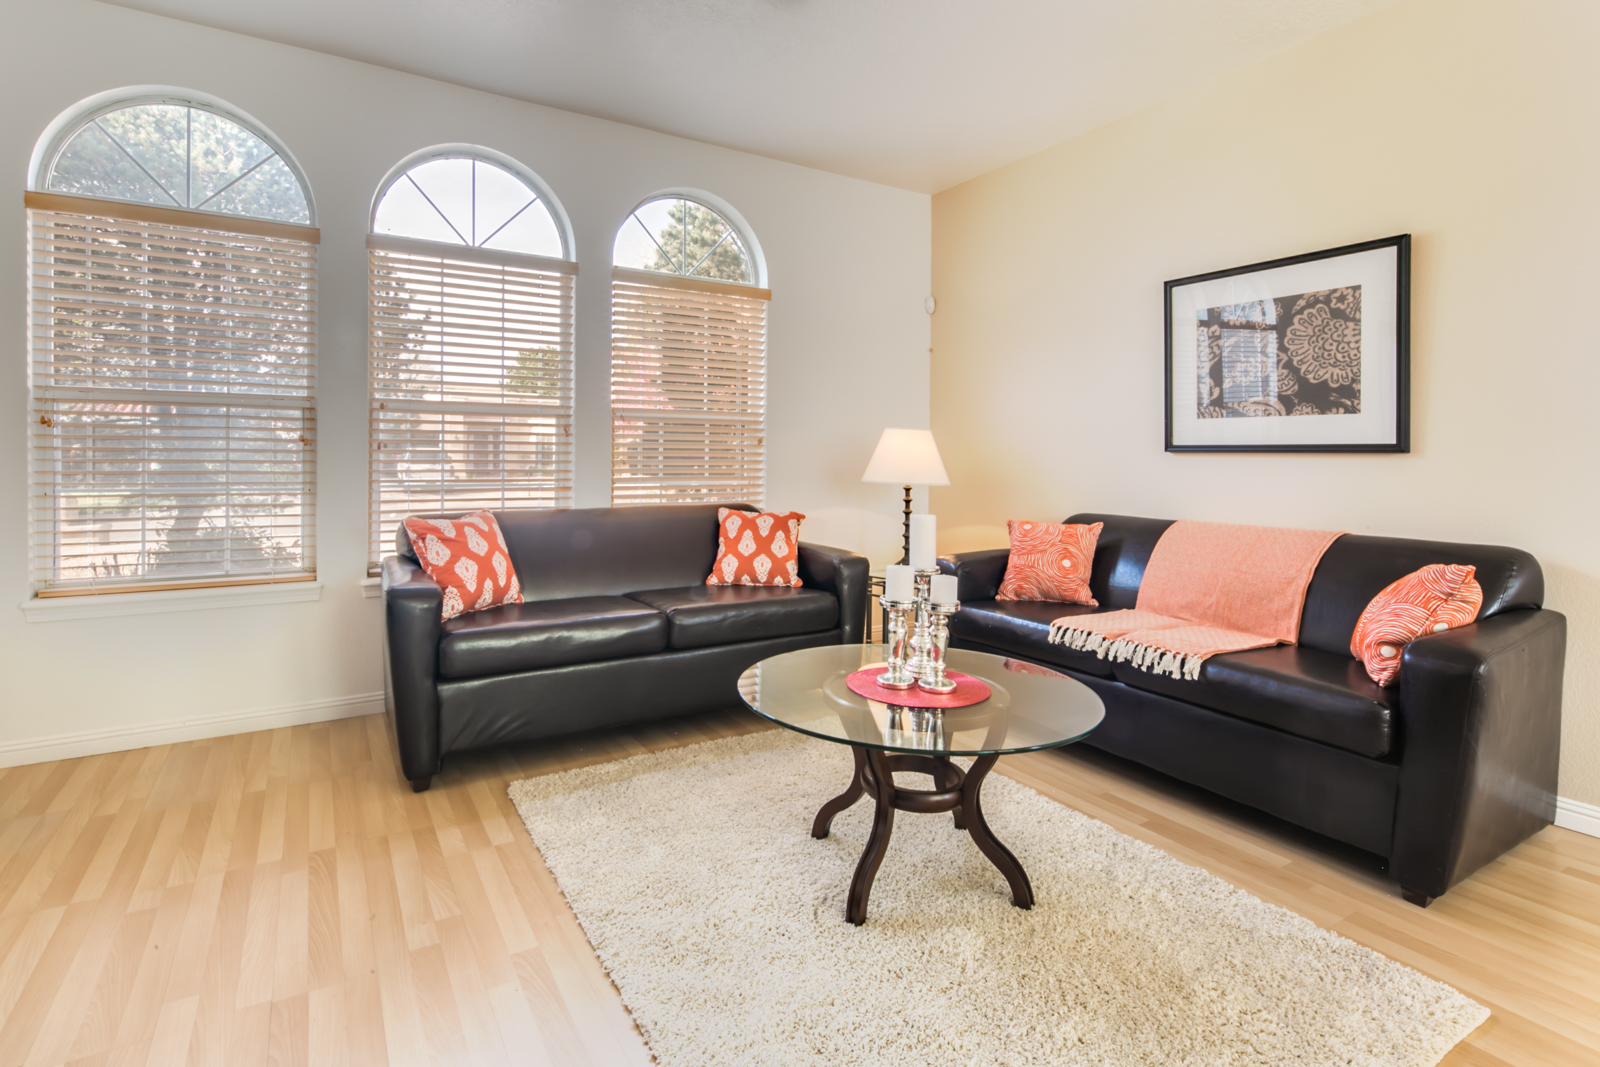 Home Staging In Albuquerque Sold In 28 Days Heritage East Beauty Home Staging Photos 9401